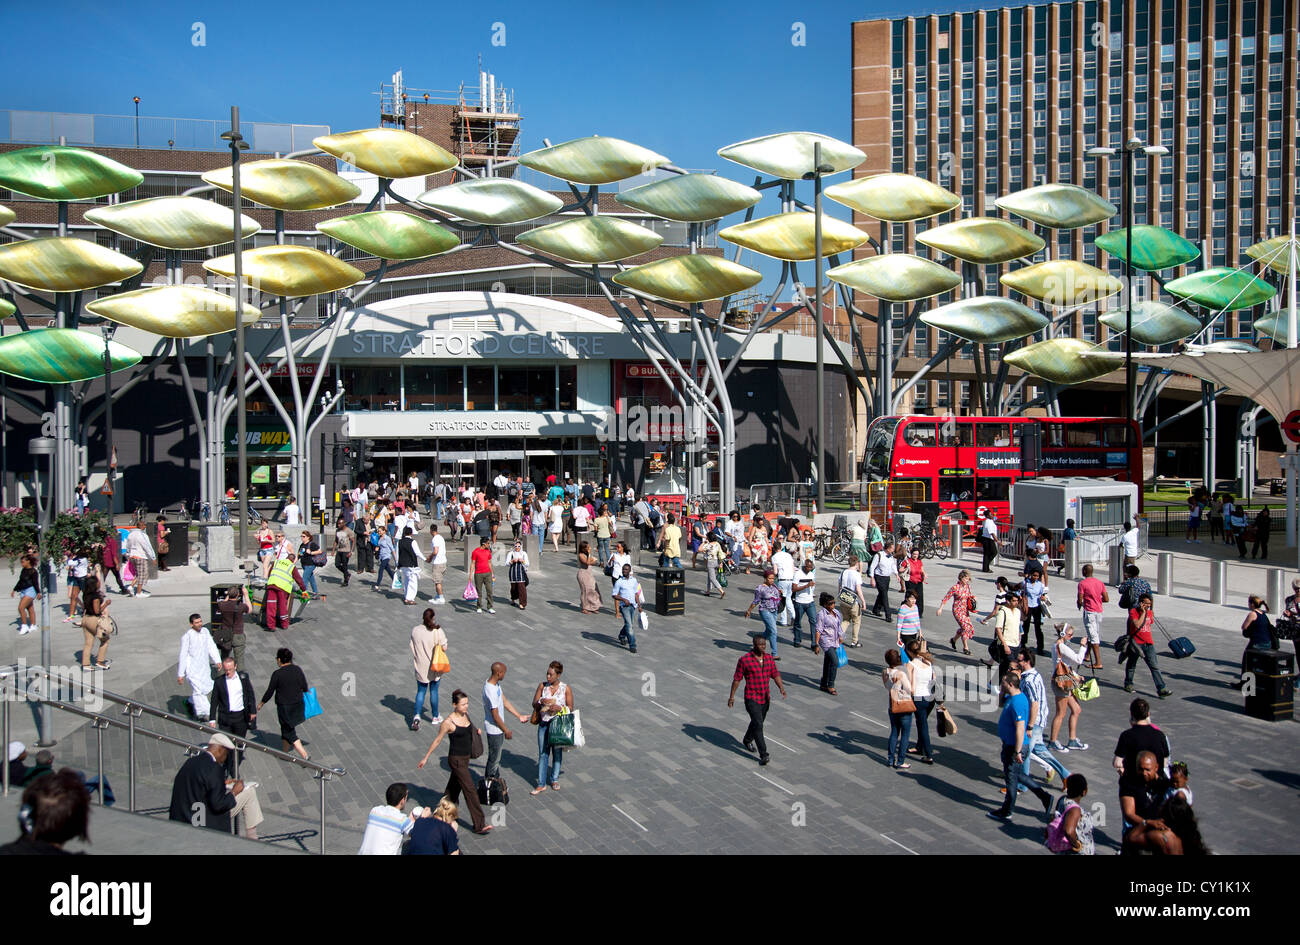 England. London. Crowds of people outside Stratford Shopping Centre showing the 'Stratford Shoal' sculpture. - Stock Image